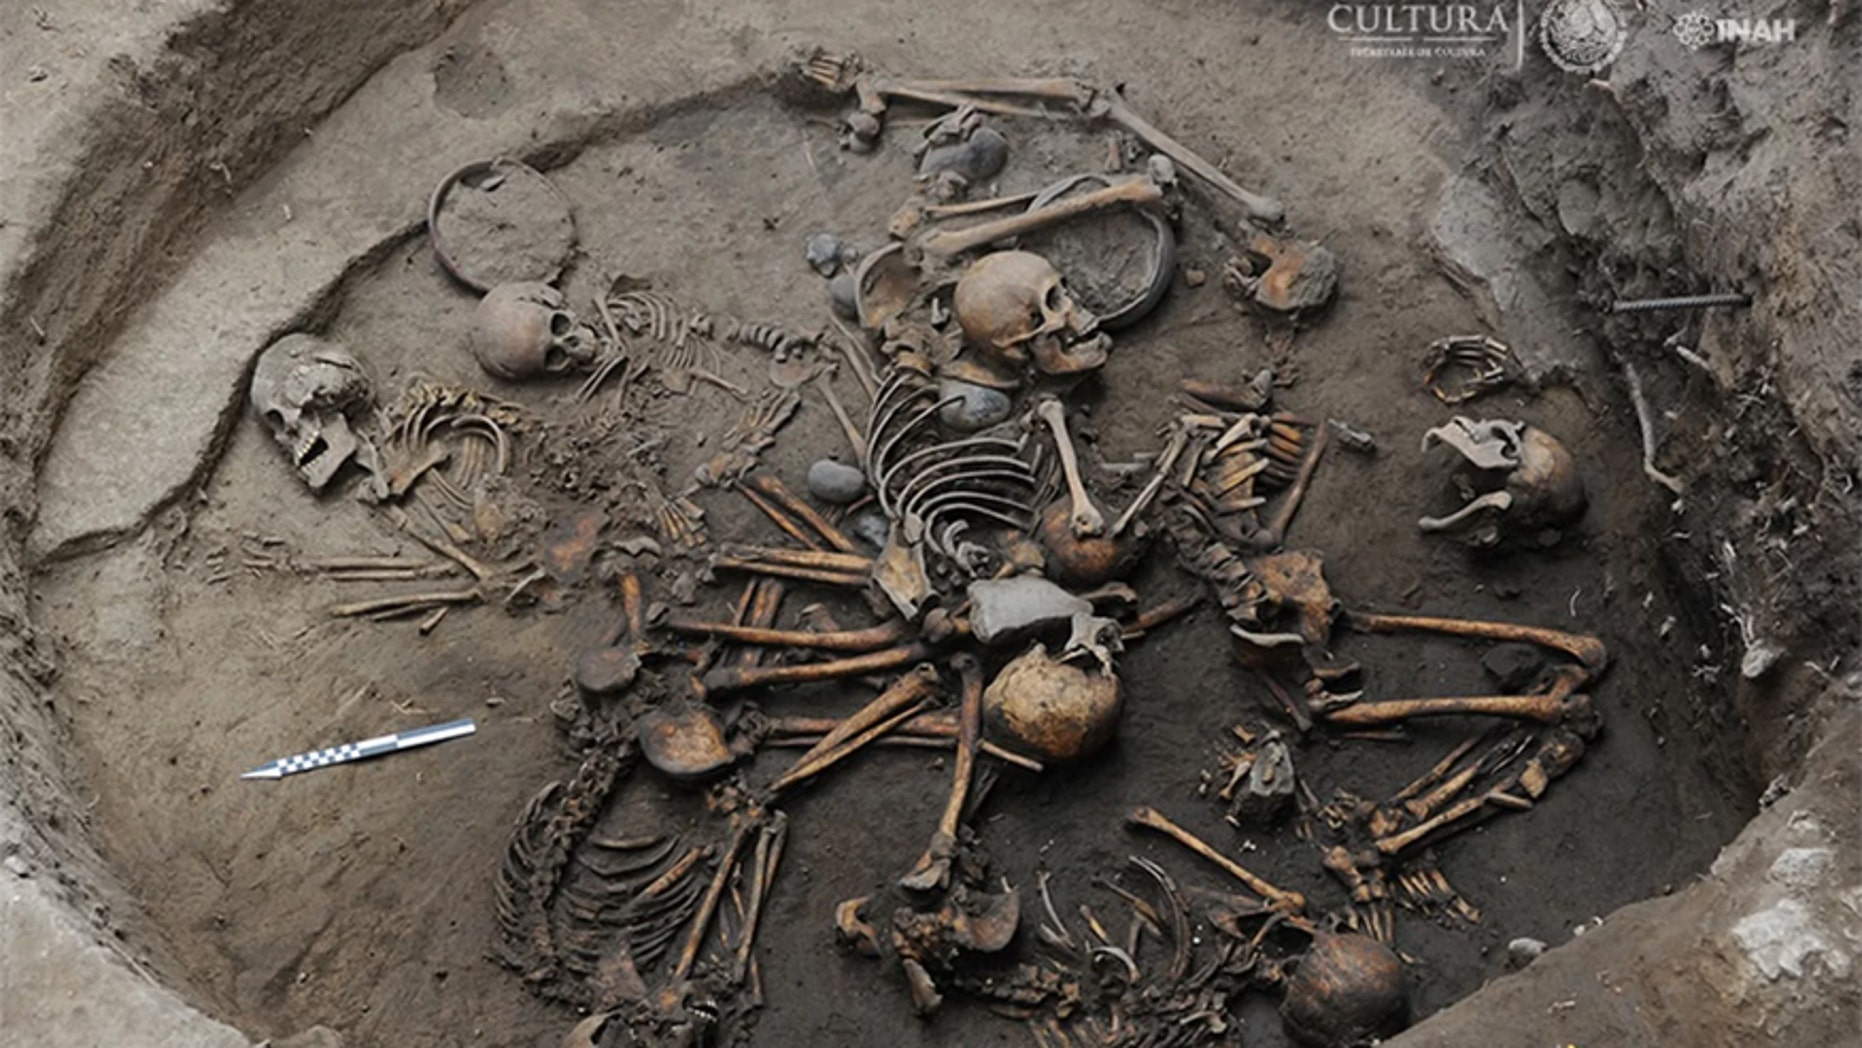 Archaeologists in Mexico City have discovered the burial of 10 skeletons arranged in a spiral, with two of the skeletons showing intentional skull deformation. Credit: INAH